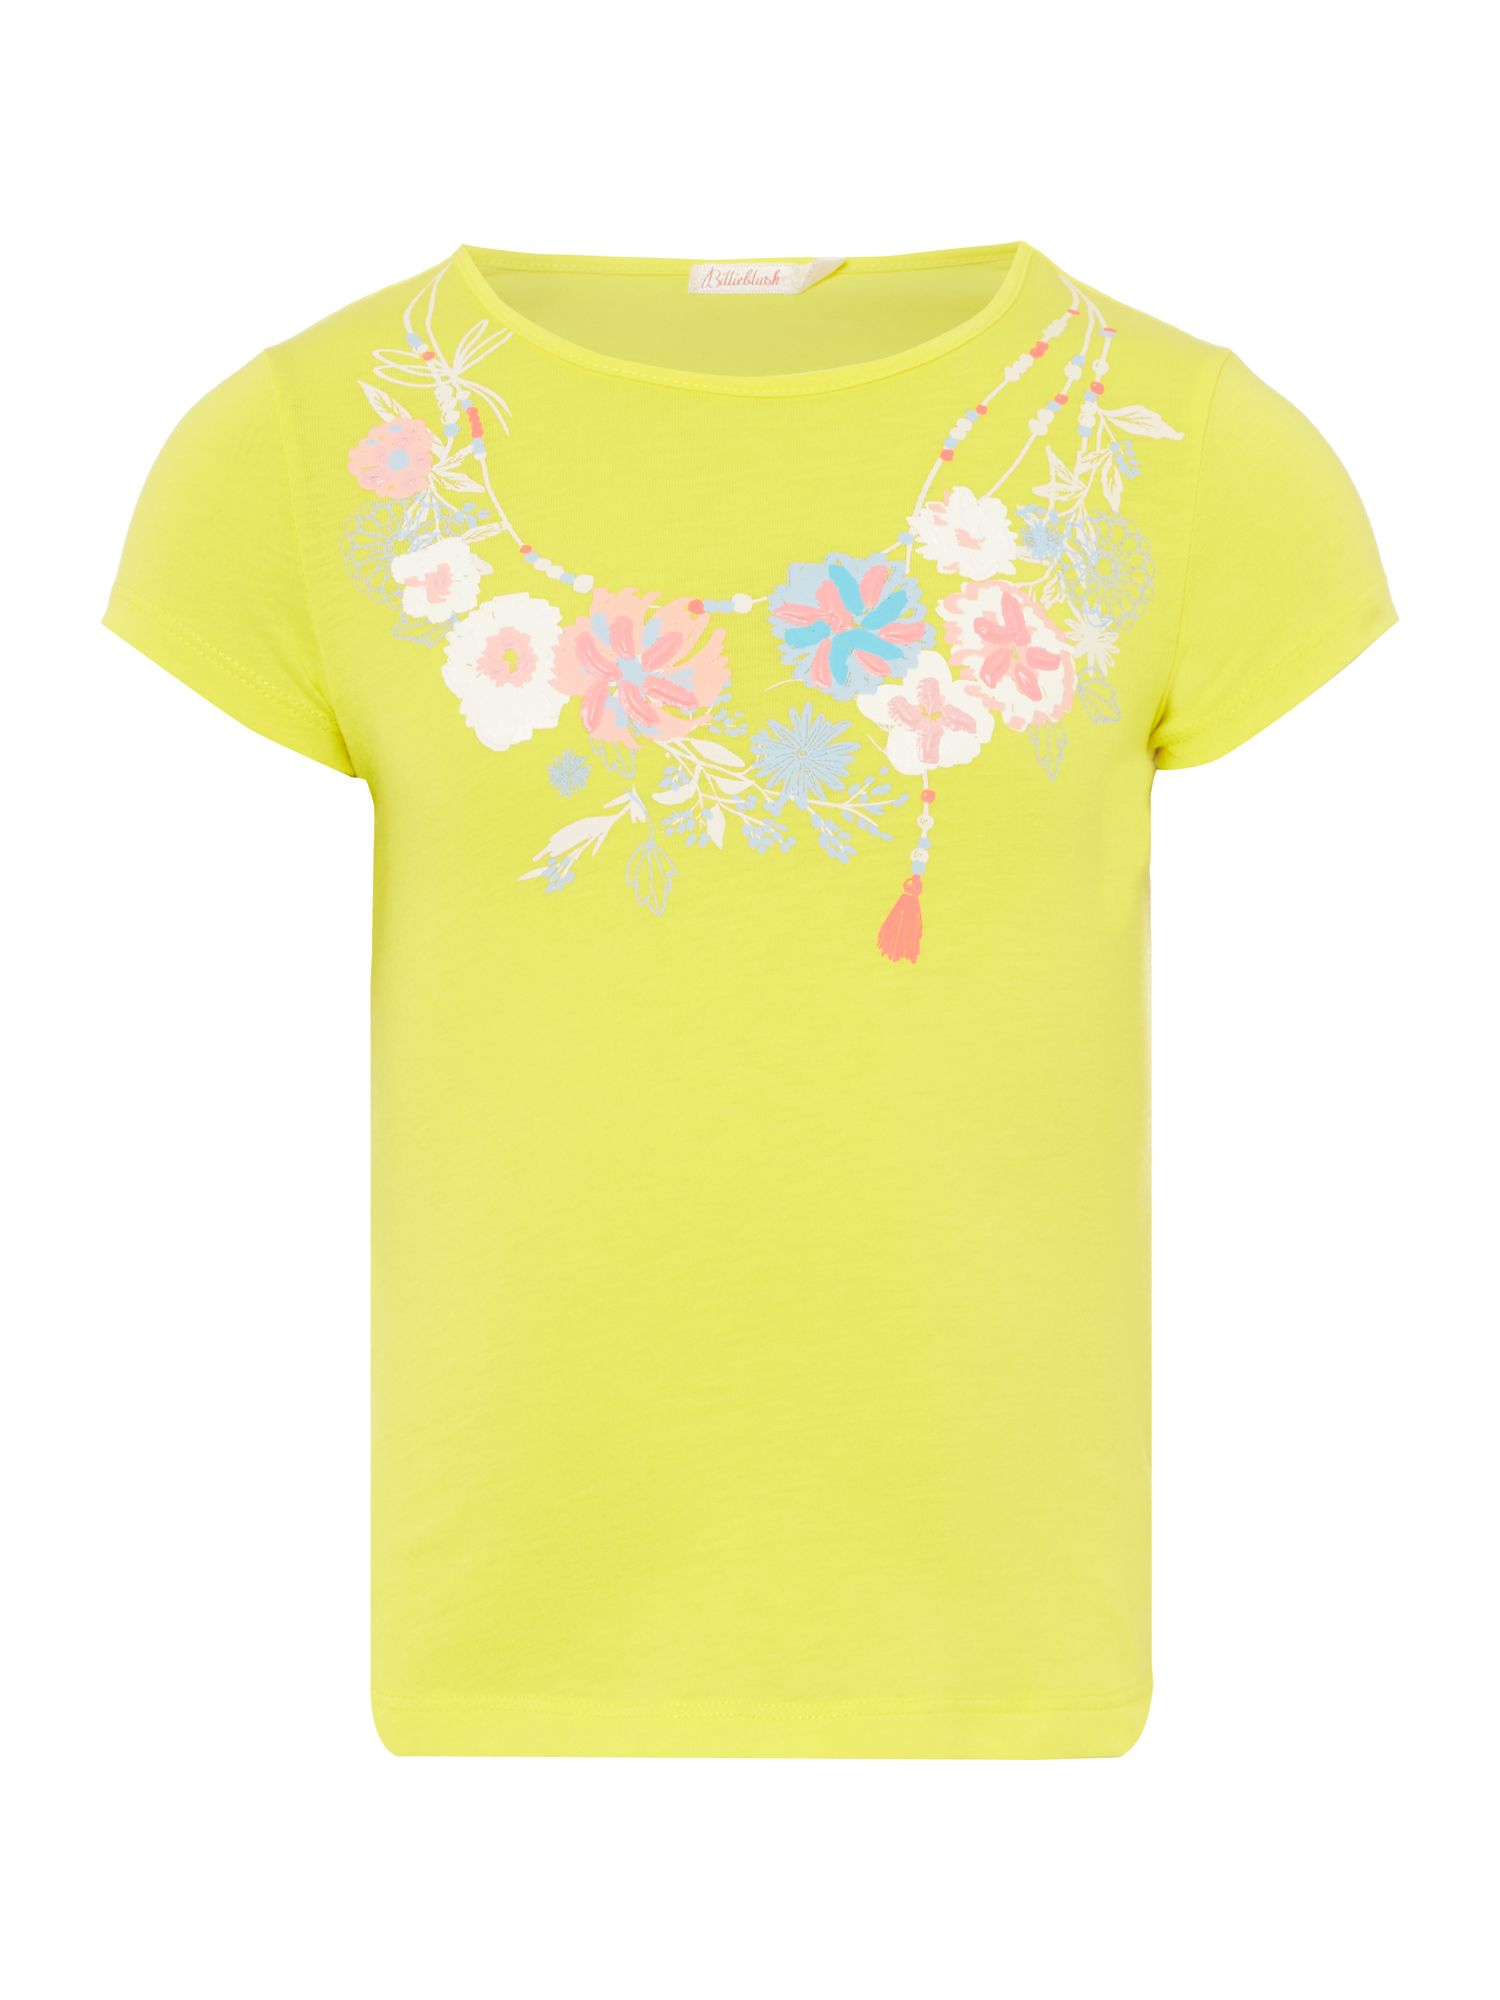 Billieblush Billieblush Girls T-Shirt, Yellow